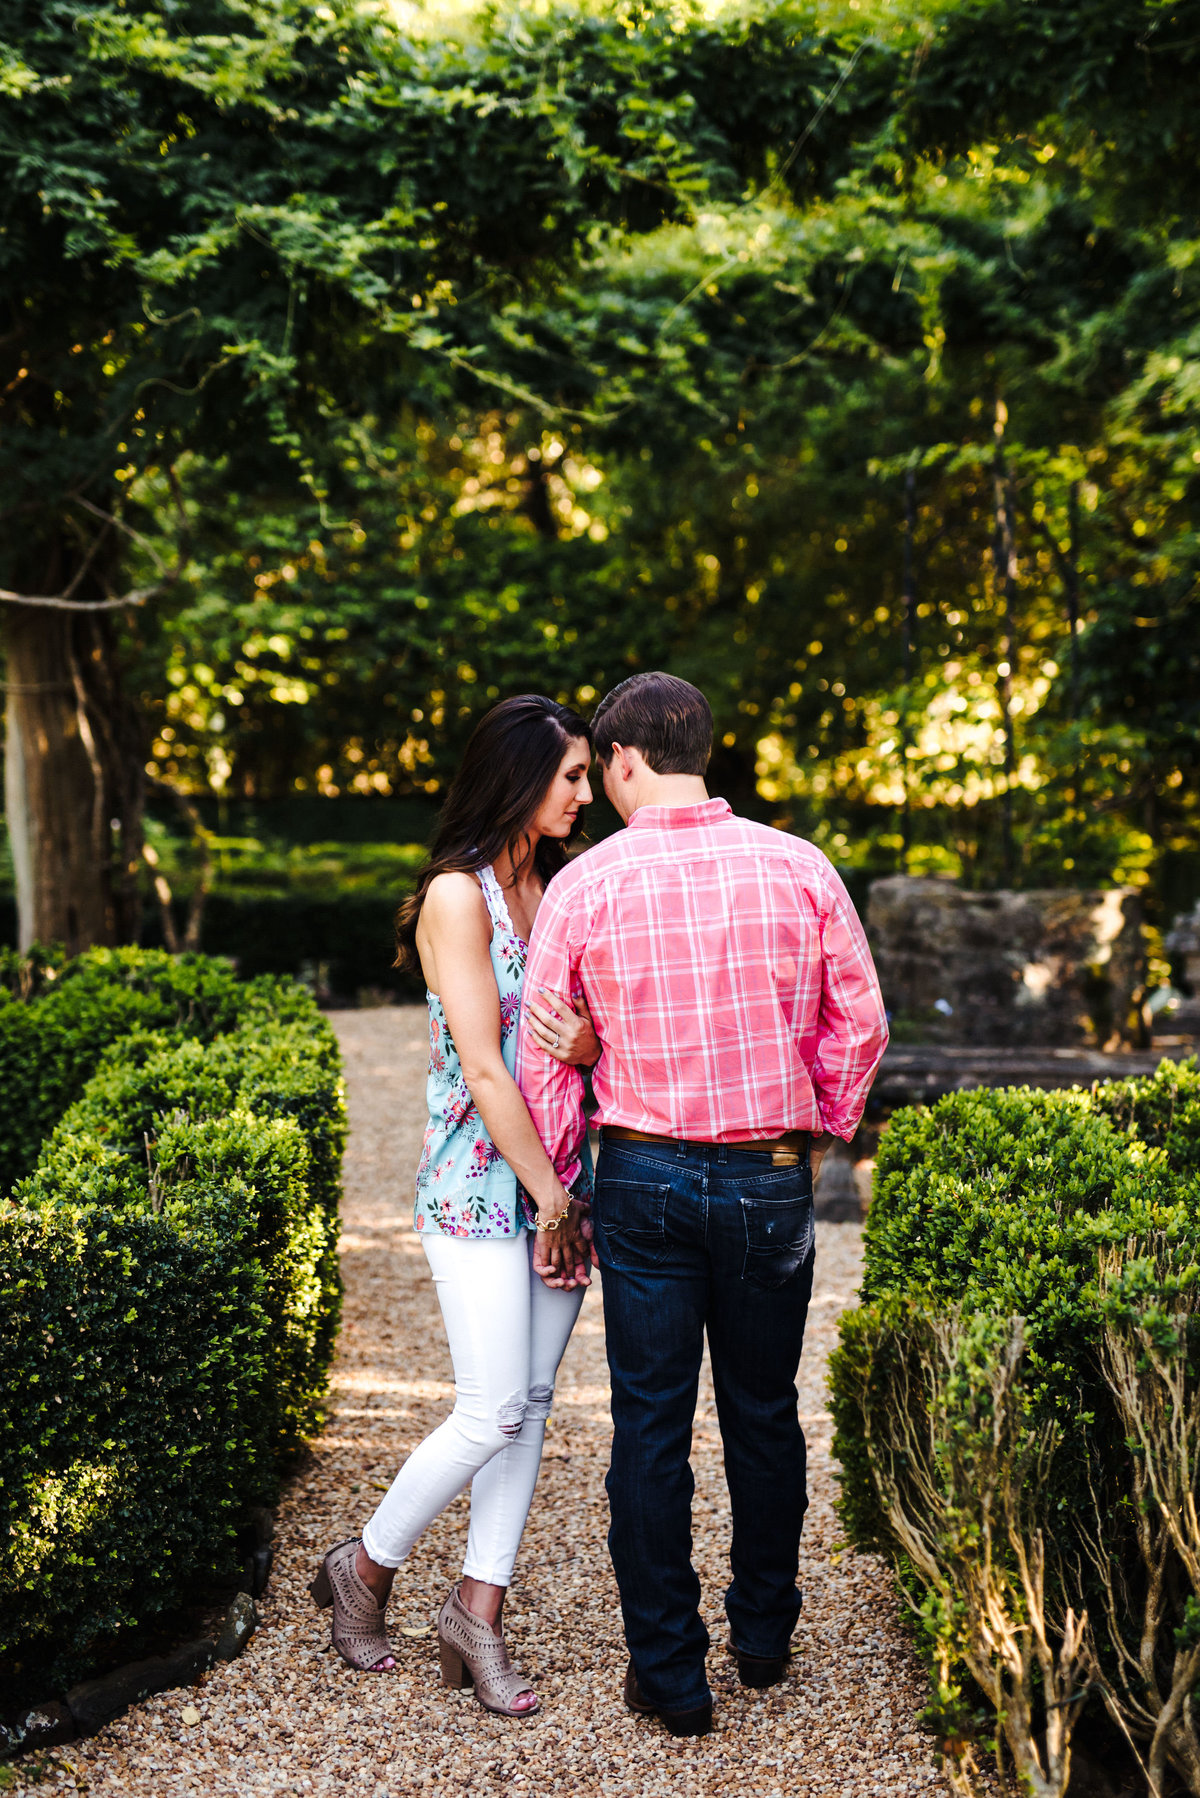 Hills and Dales Estate Engagement Session - 9